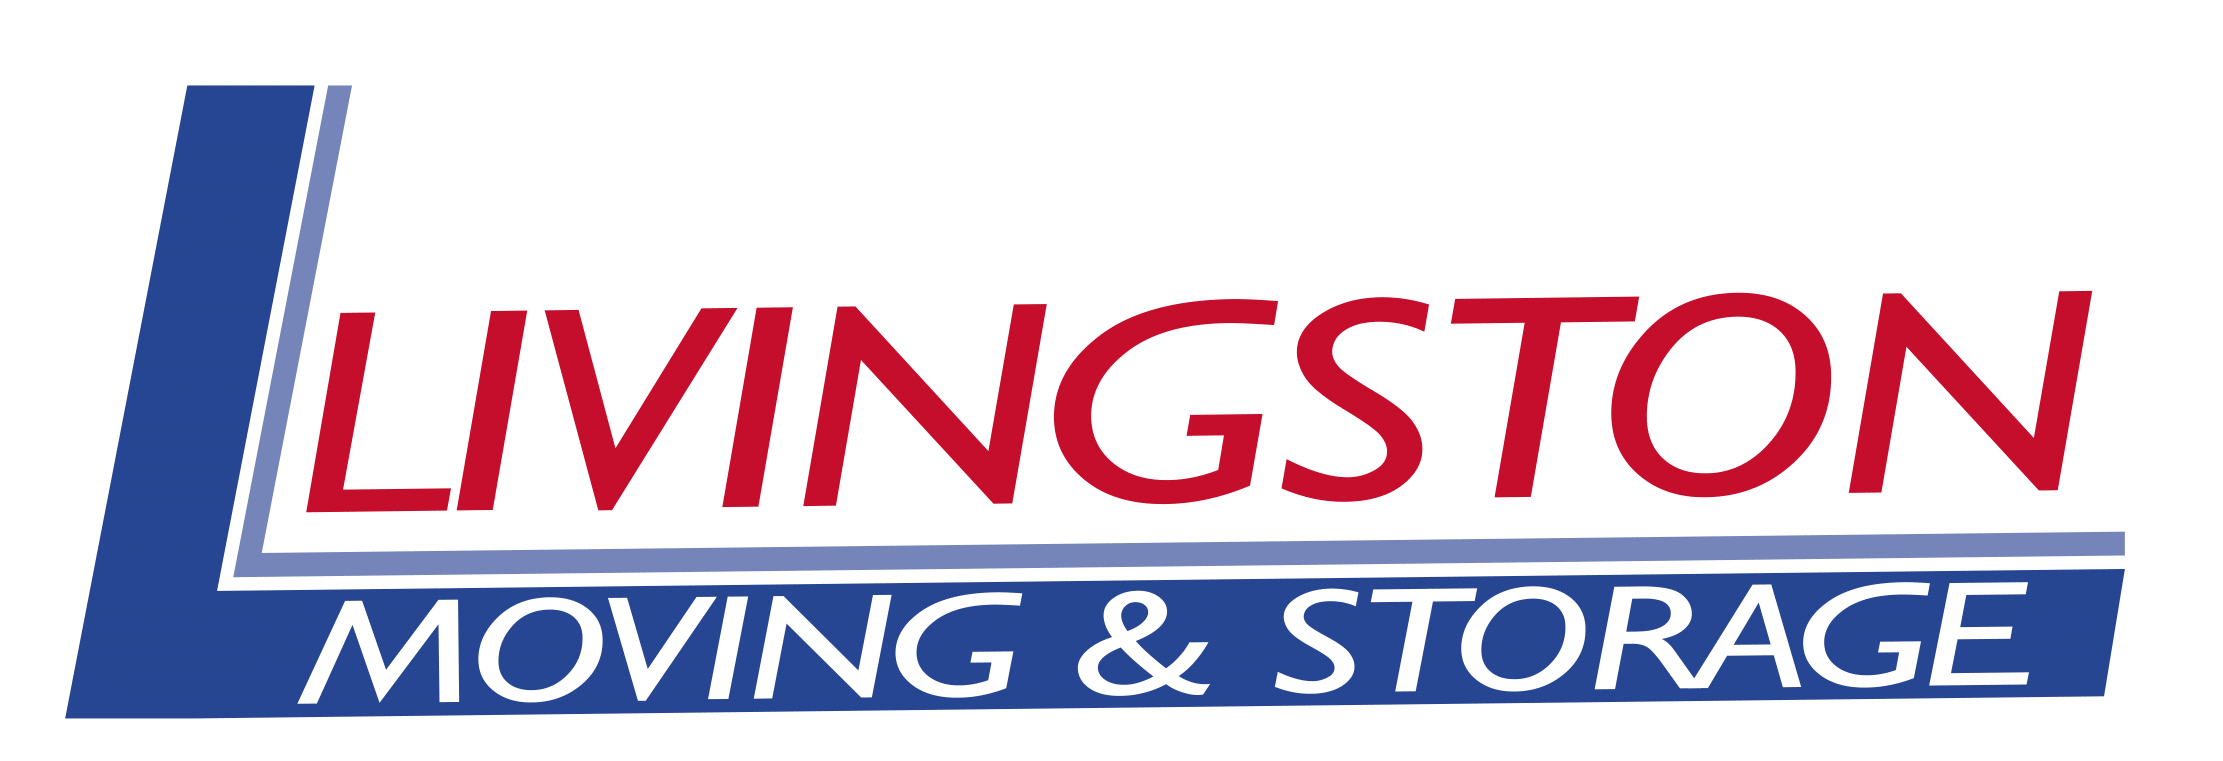 Livingston Moving & Storage services servicing Watertown, NY